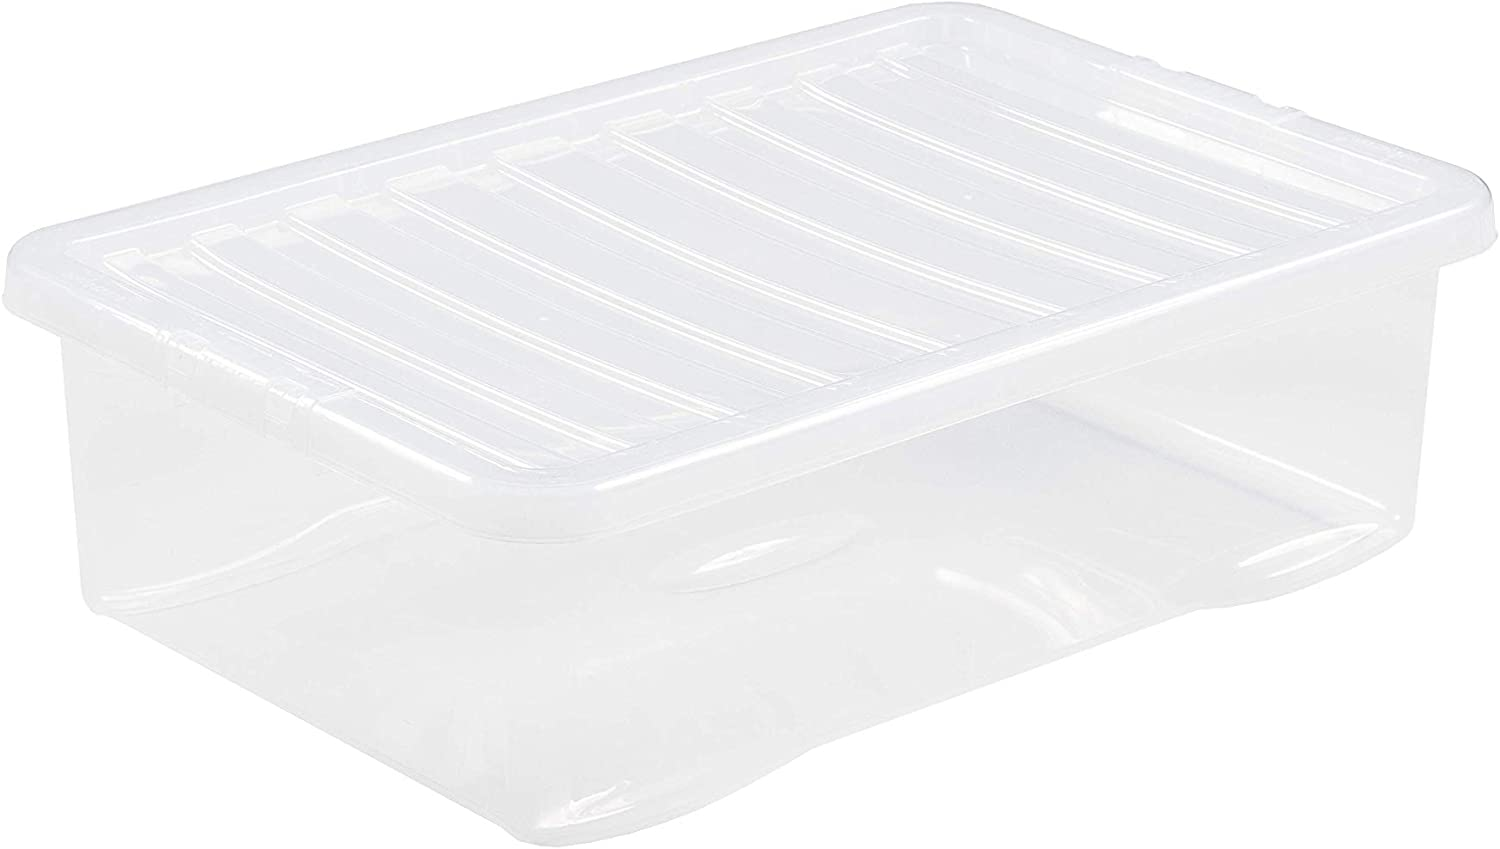 JMS® Large Medium And Small Sizes Crystal Clear Plastic Storage Box Nesting Stackable Design Secure Clip on Lid-Under Bed Wardrobe Shoe Home Garage Office Toy Space Save (1 Pack 32L)